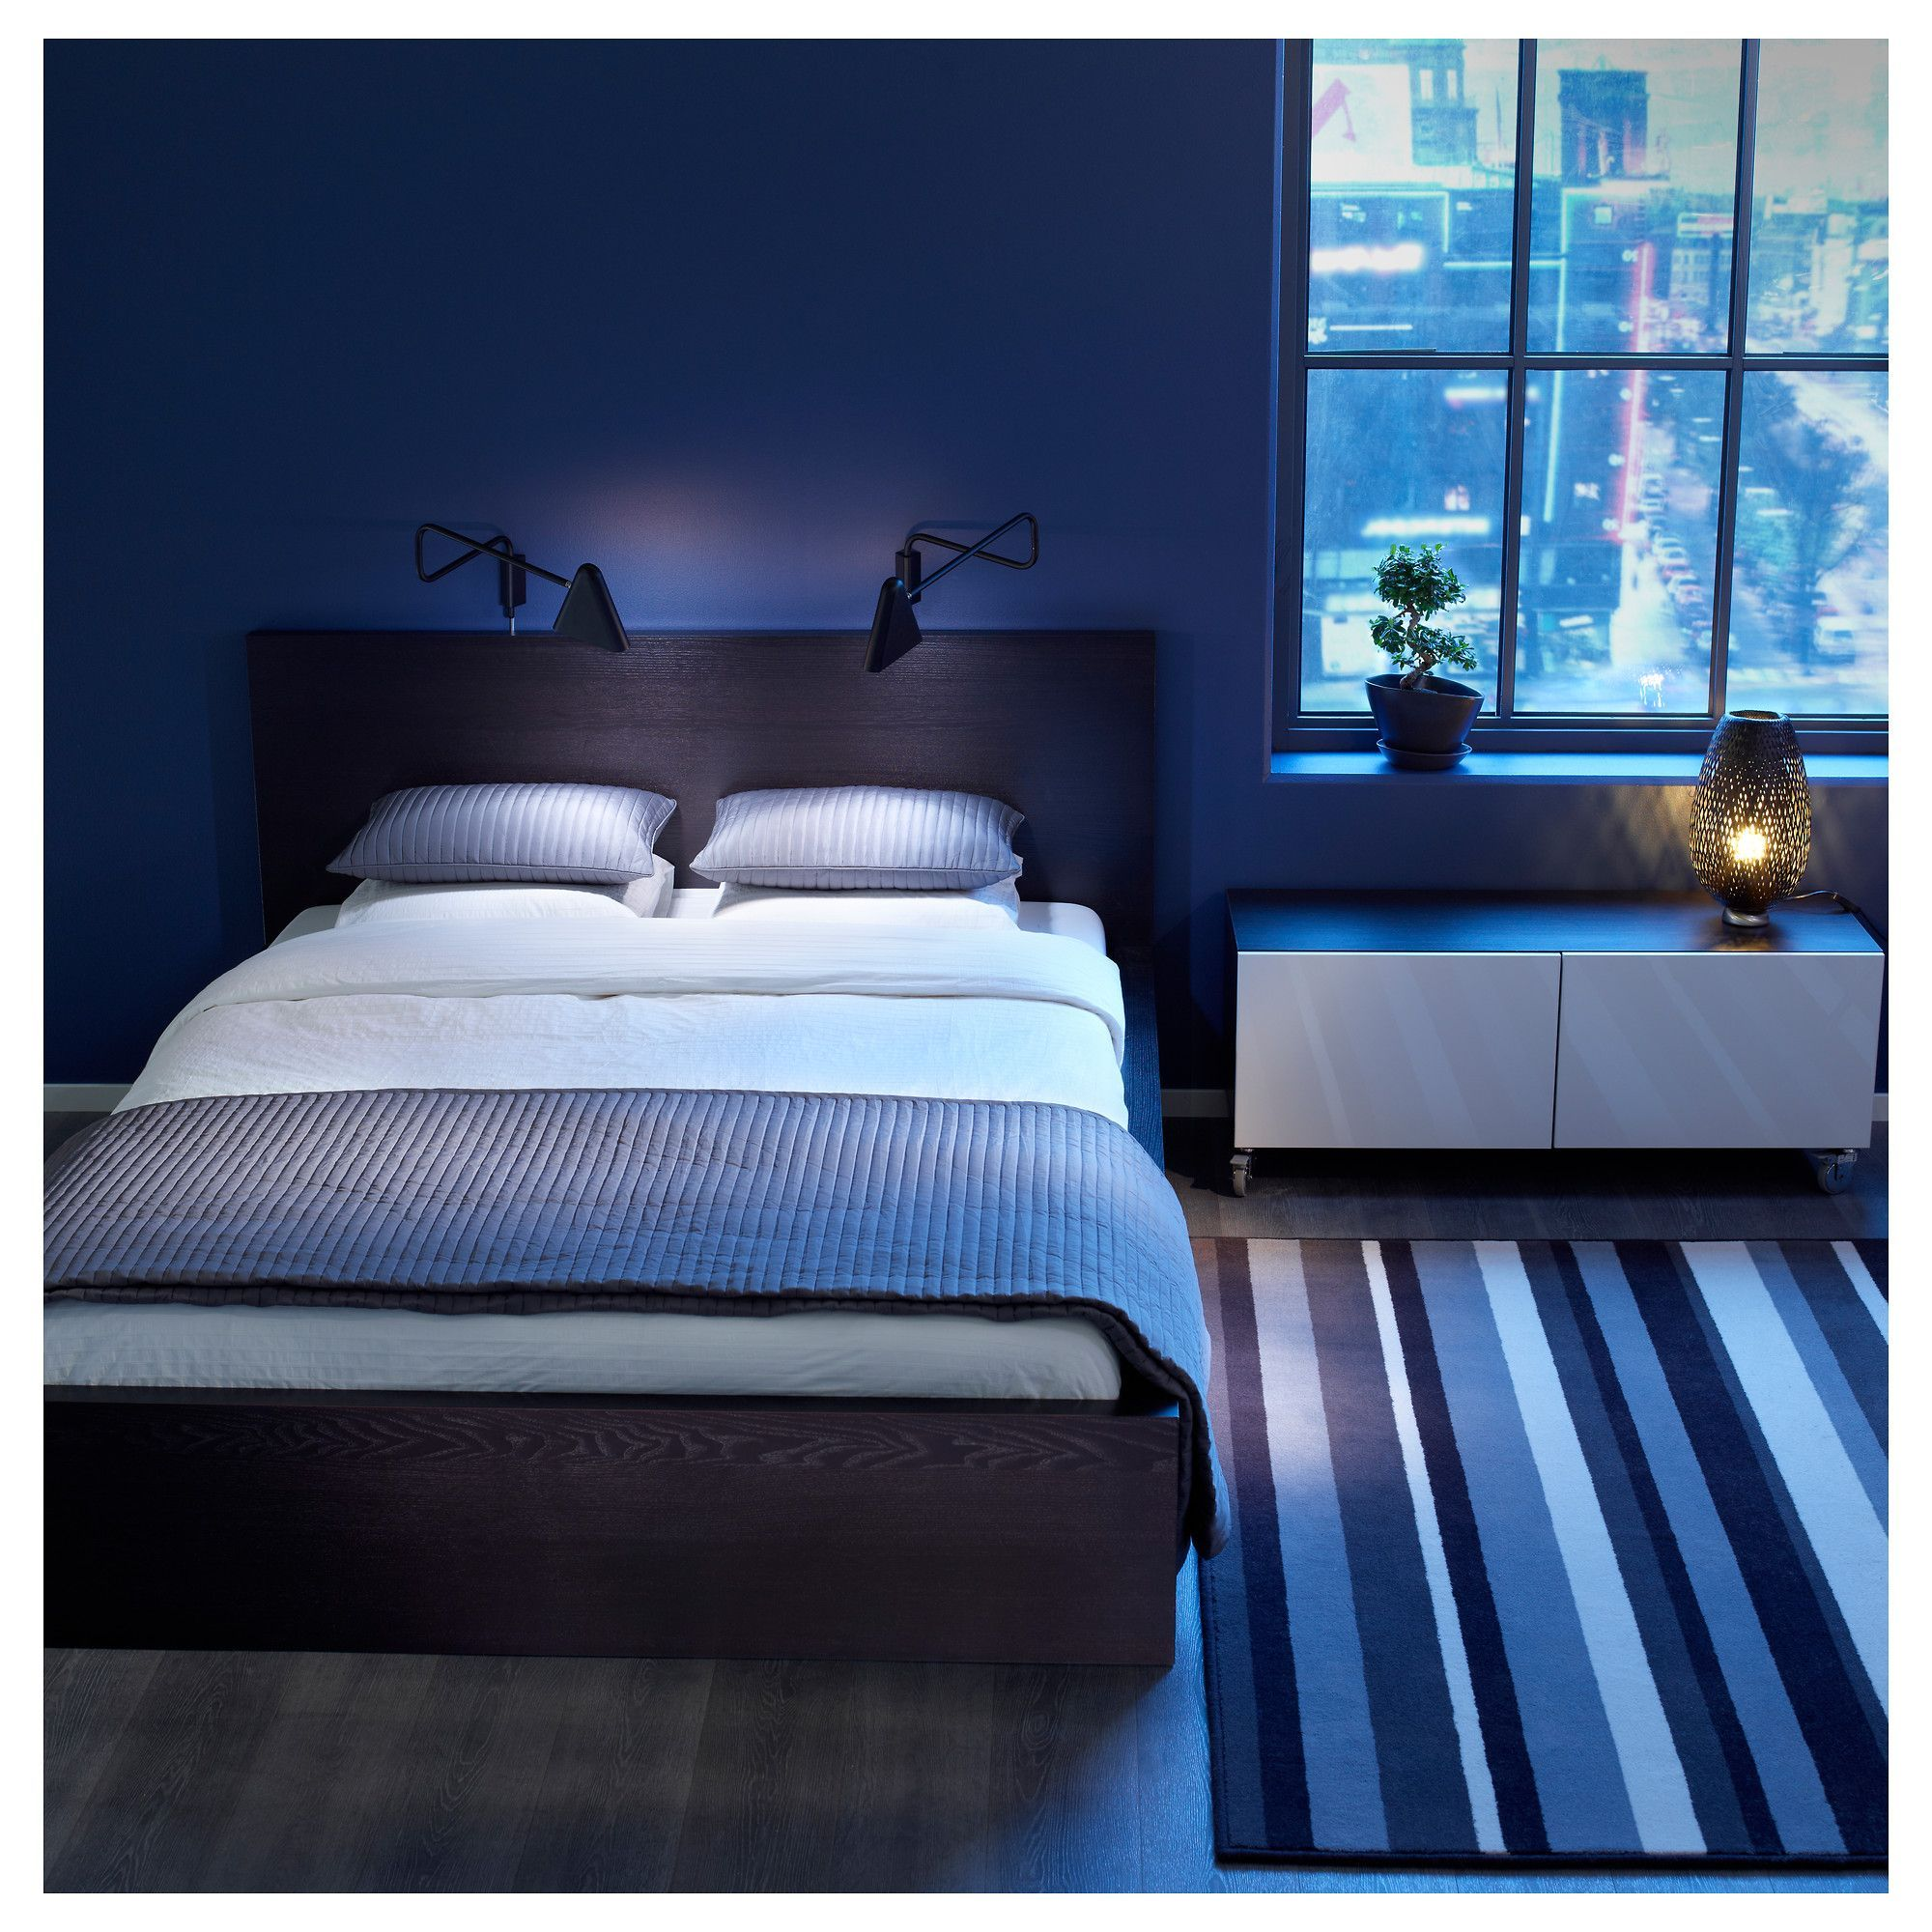 Bedroom designs for couples in blue - Best Blue Themed Bedroom Decorations With Dark Wooden Platform Bed Plus White Bedding Plus Brown Wooden Headbaord Plus White Cushions And Striped Carpet